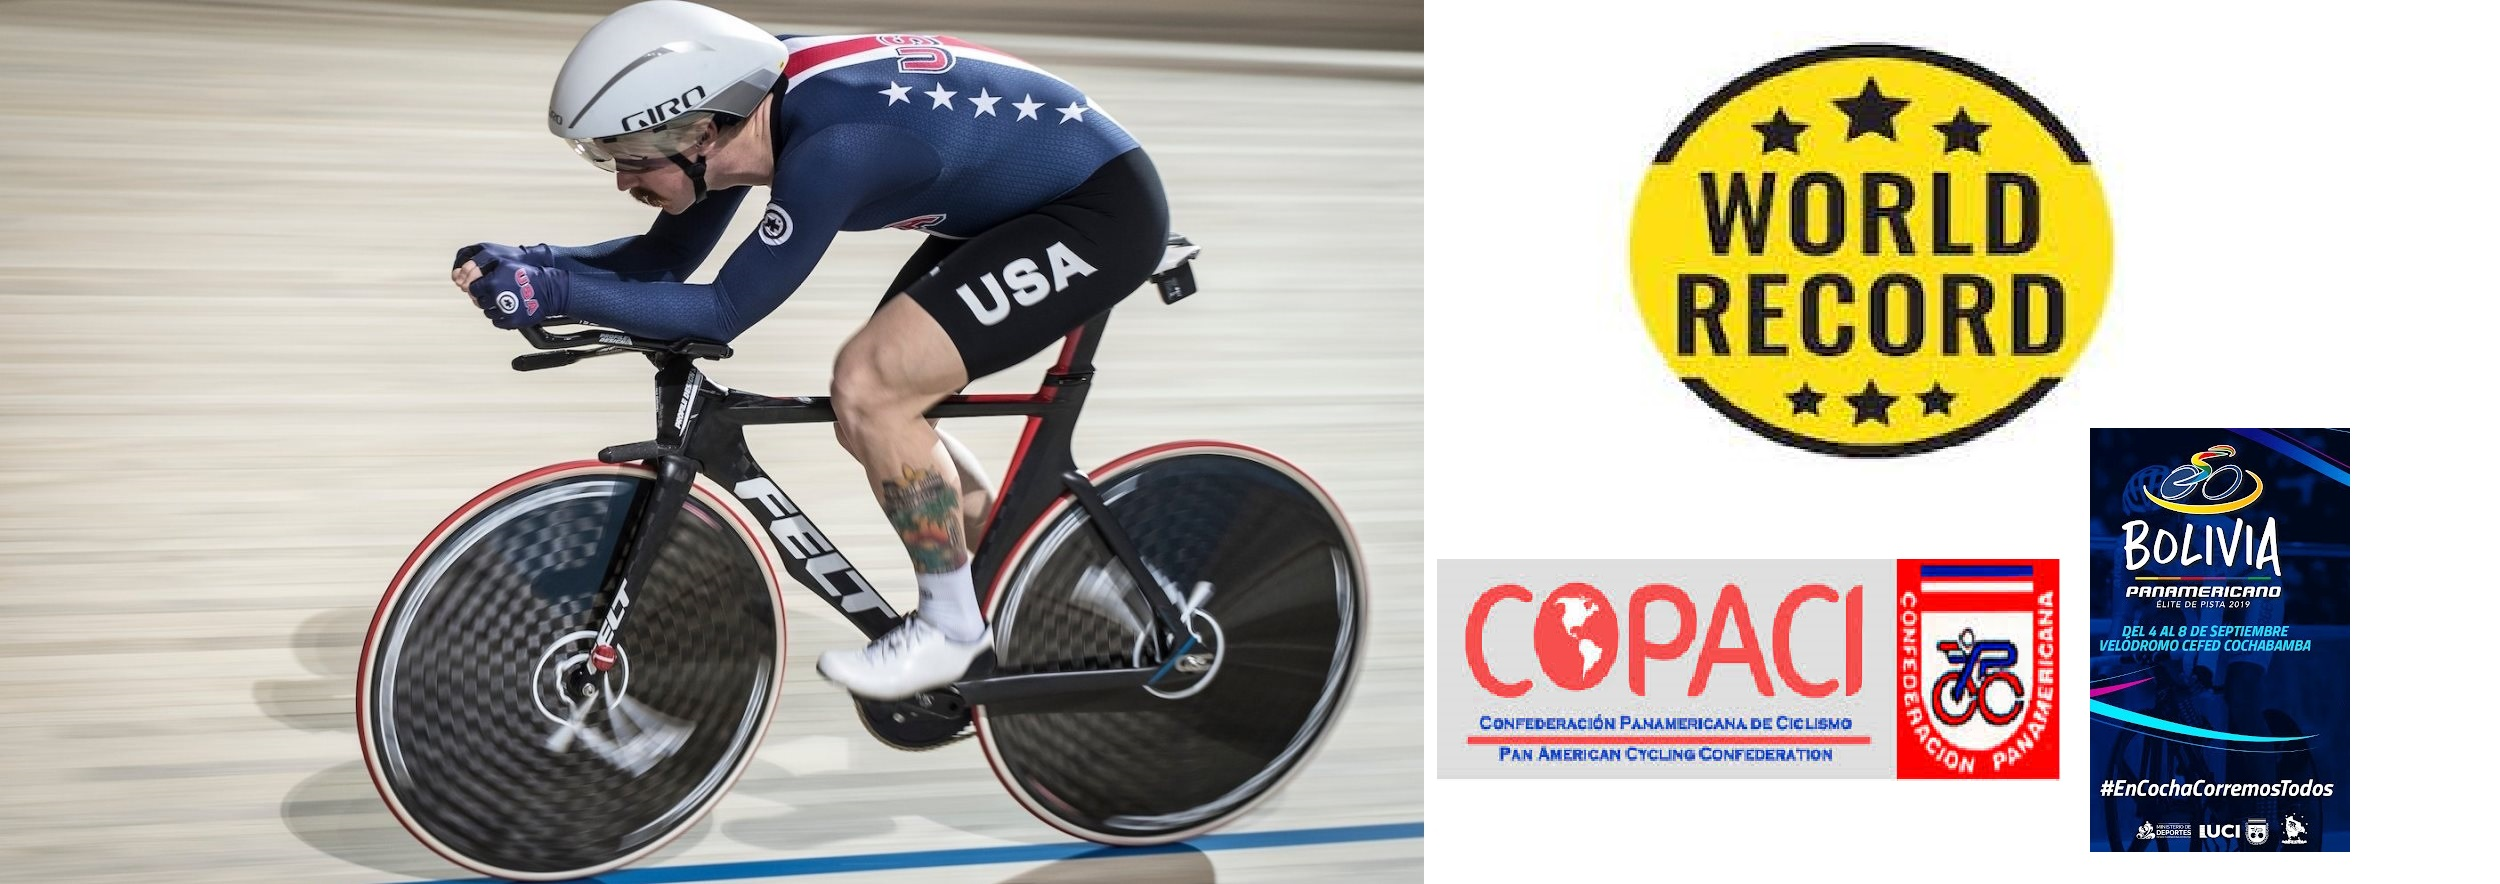 Ashton_Lambie_IP_World_record_2018_USA_Cycling_2048x